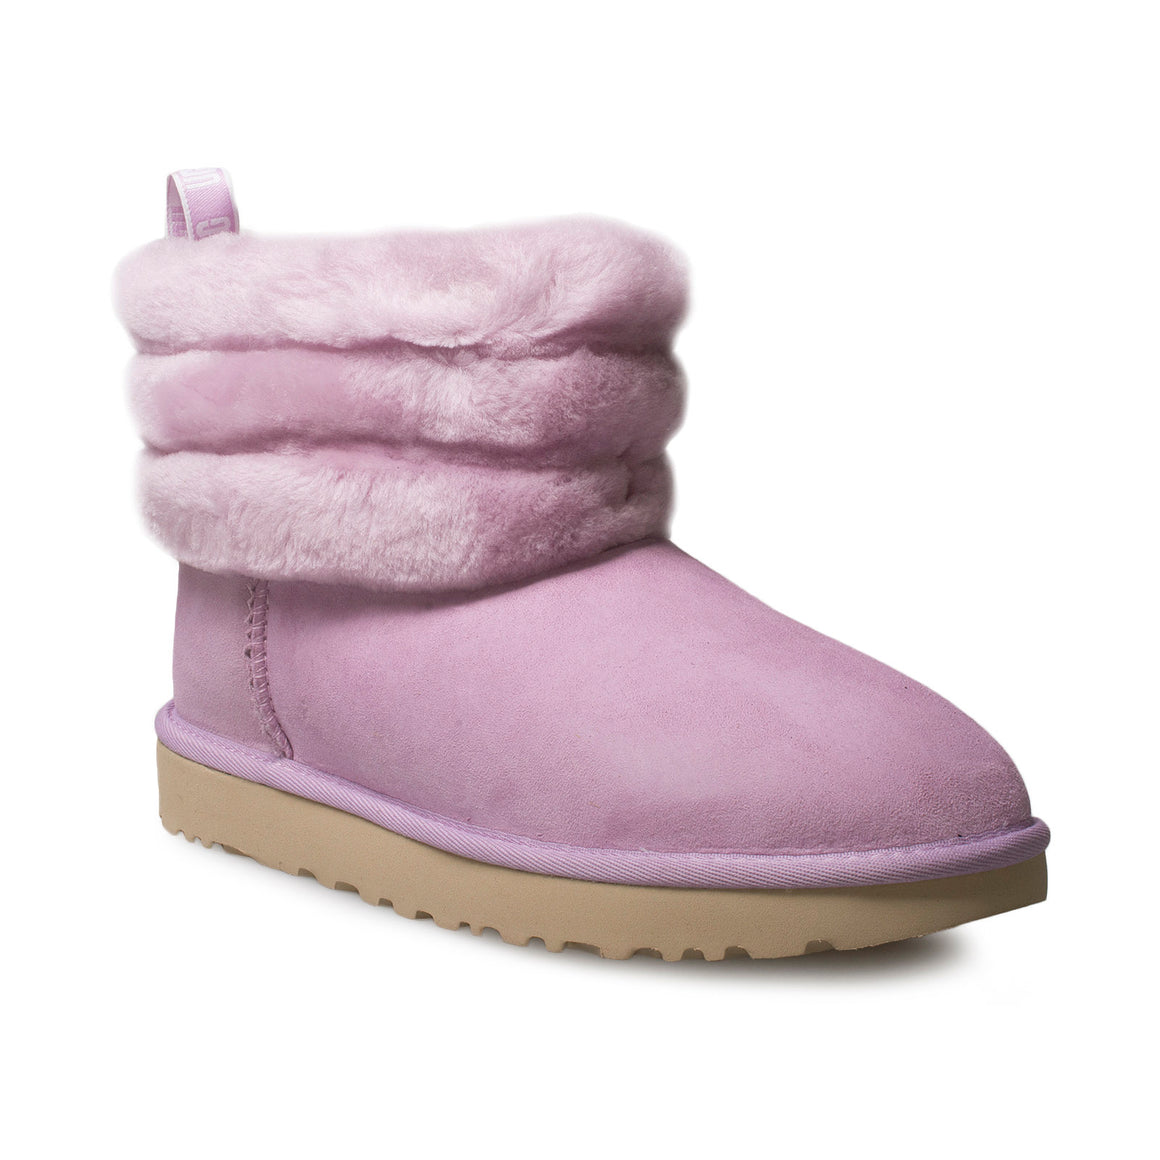 UGG Fluff Mini Quilted California Aster Boots - Women's